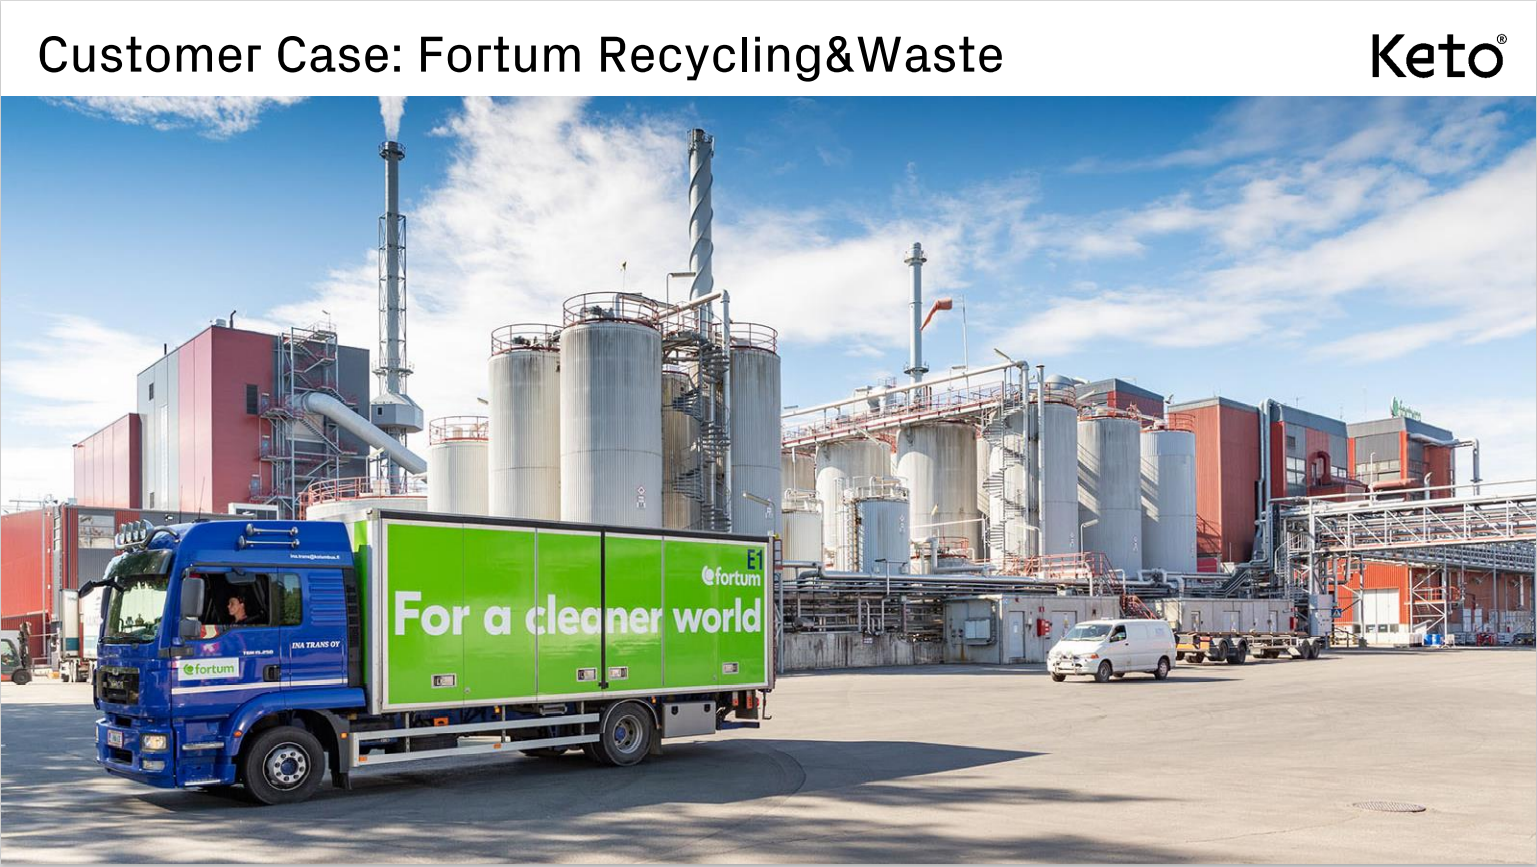 Fortum front page